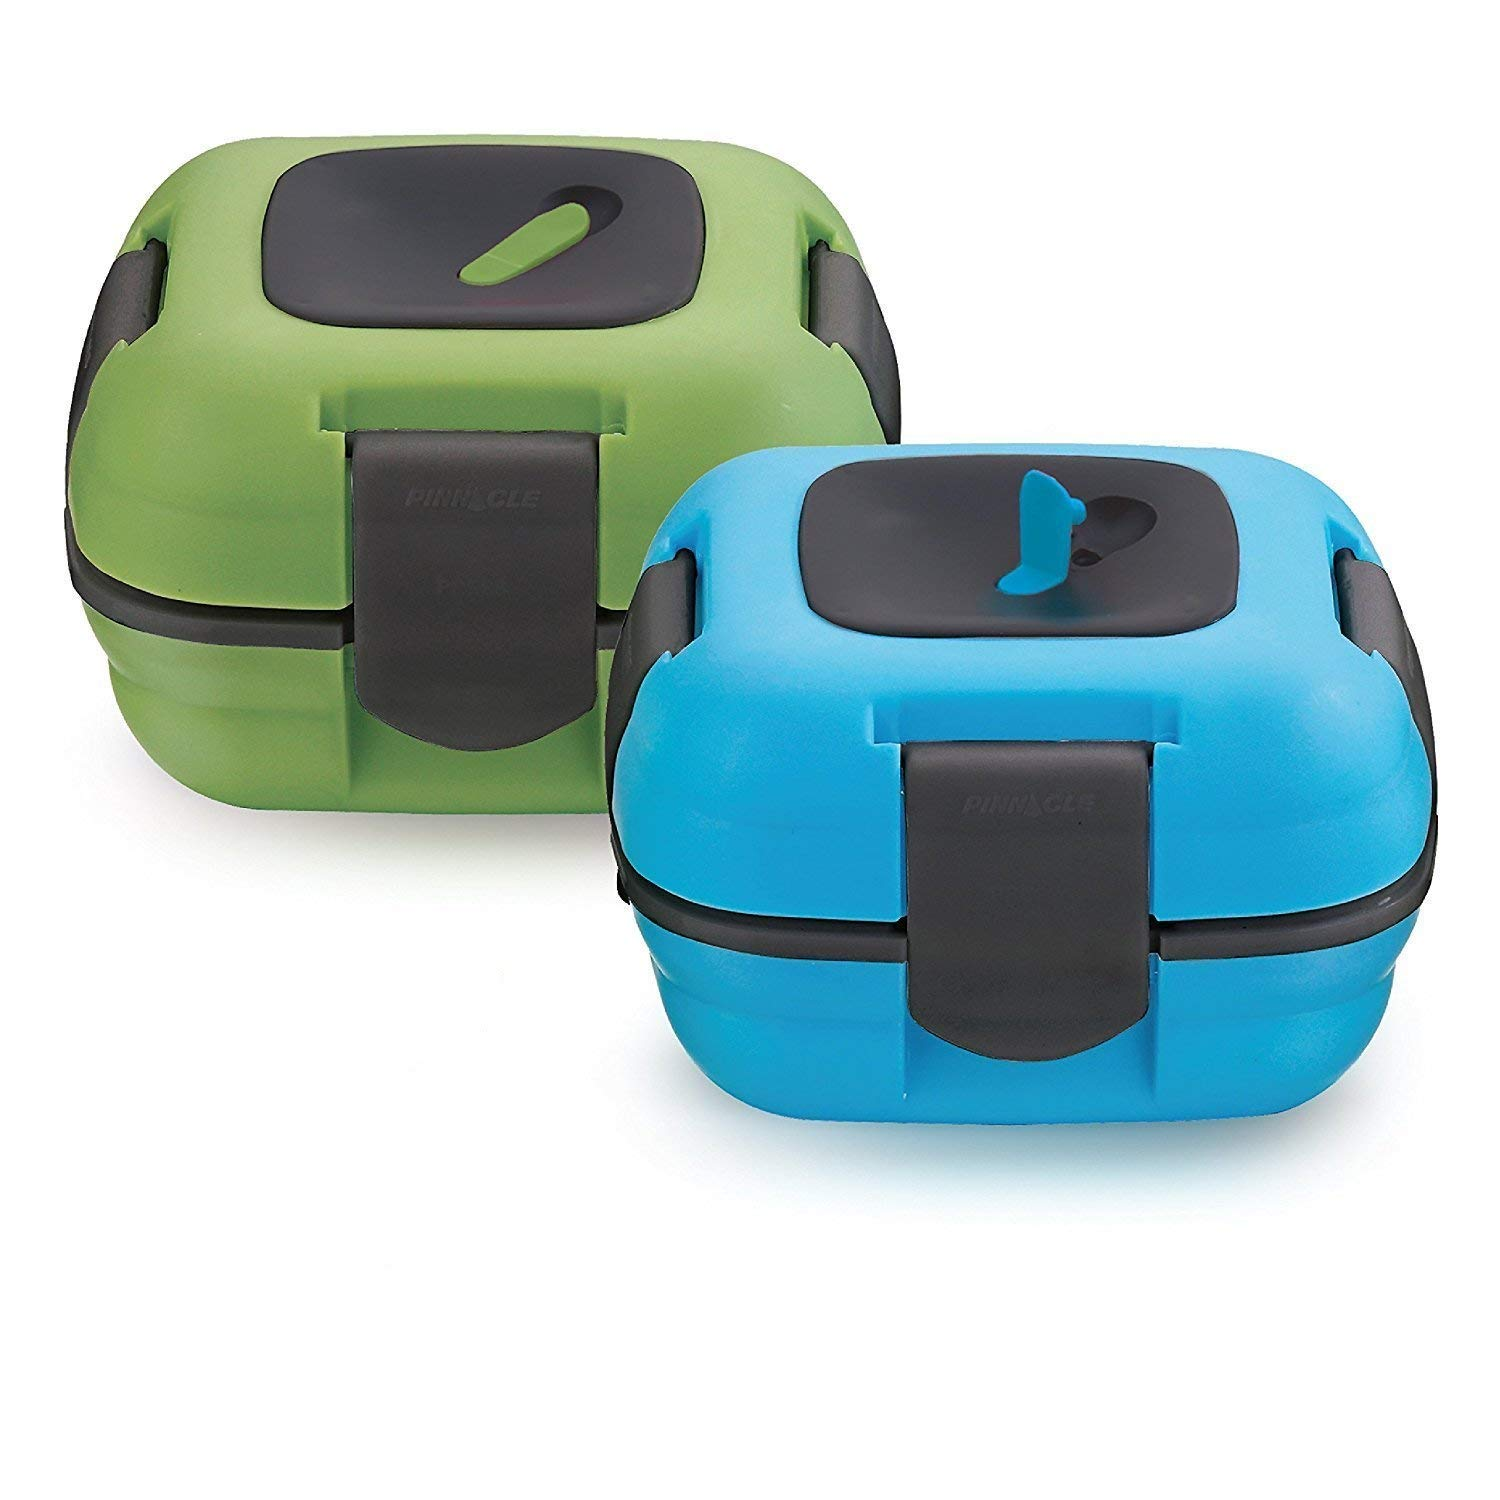 Lunch Box ~ Pinnacle Insulated Leak Proof Lunch Box for Adults and Kids - Thermal Lunch Container With NEW Heat Release Valve ~Set of 2~ Blue/Green by Pinnacle Thermoware (Image #1)